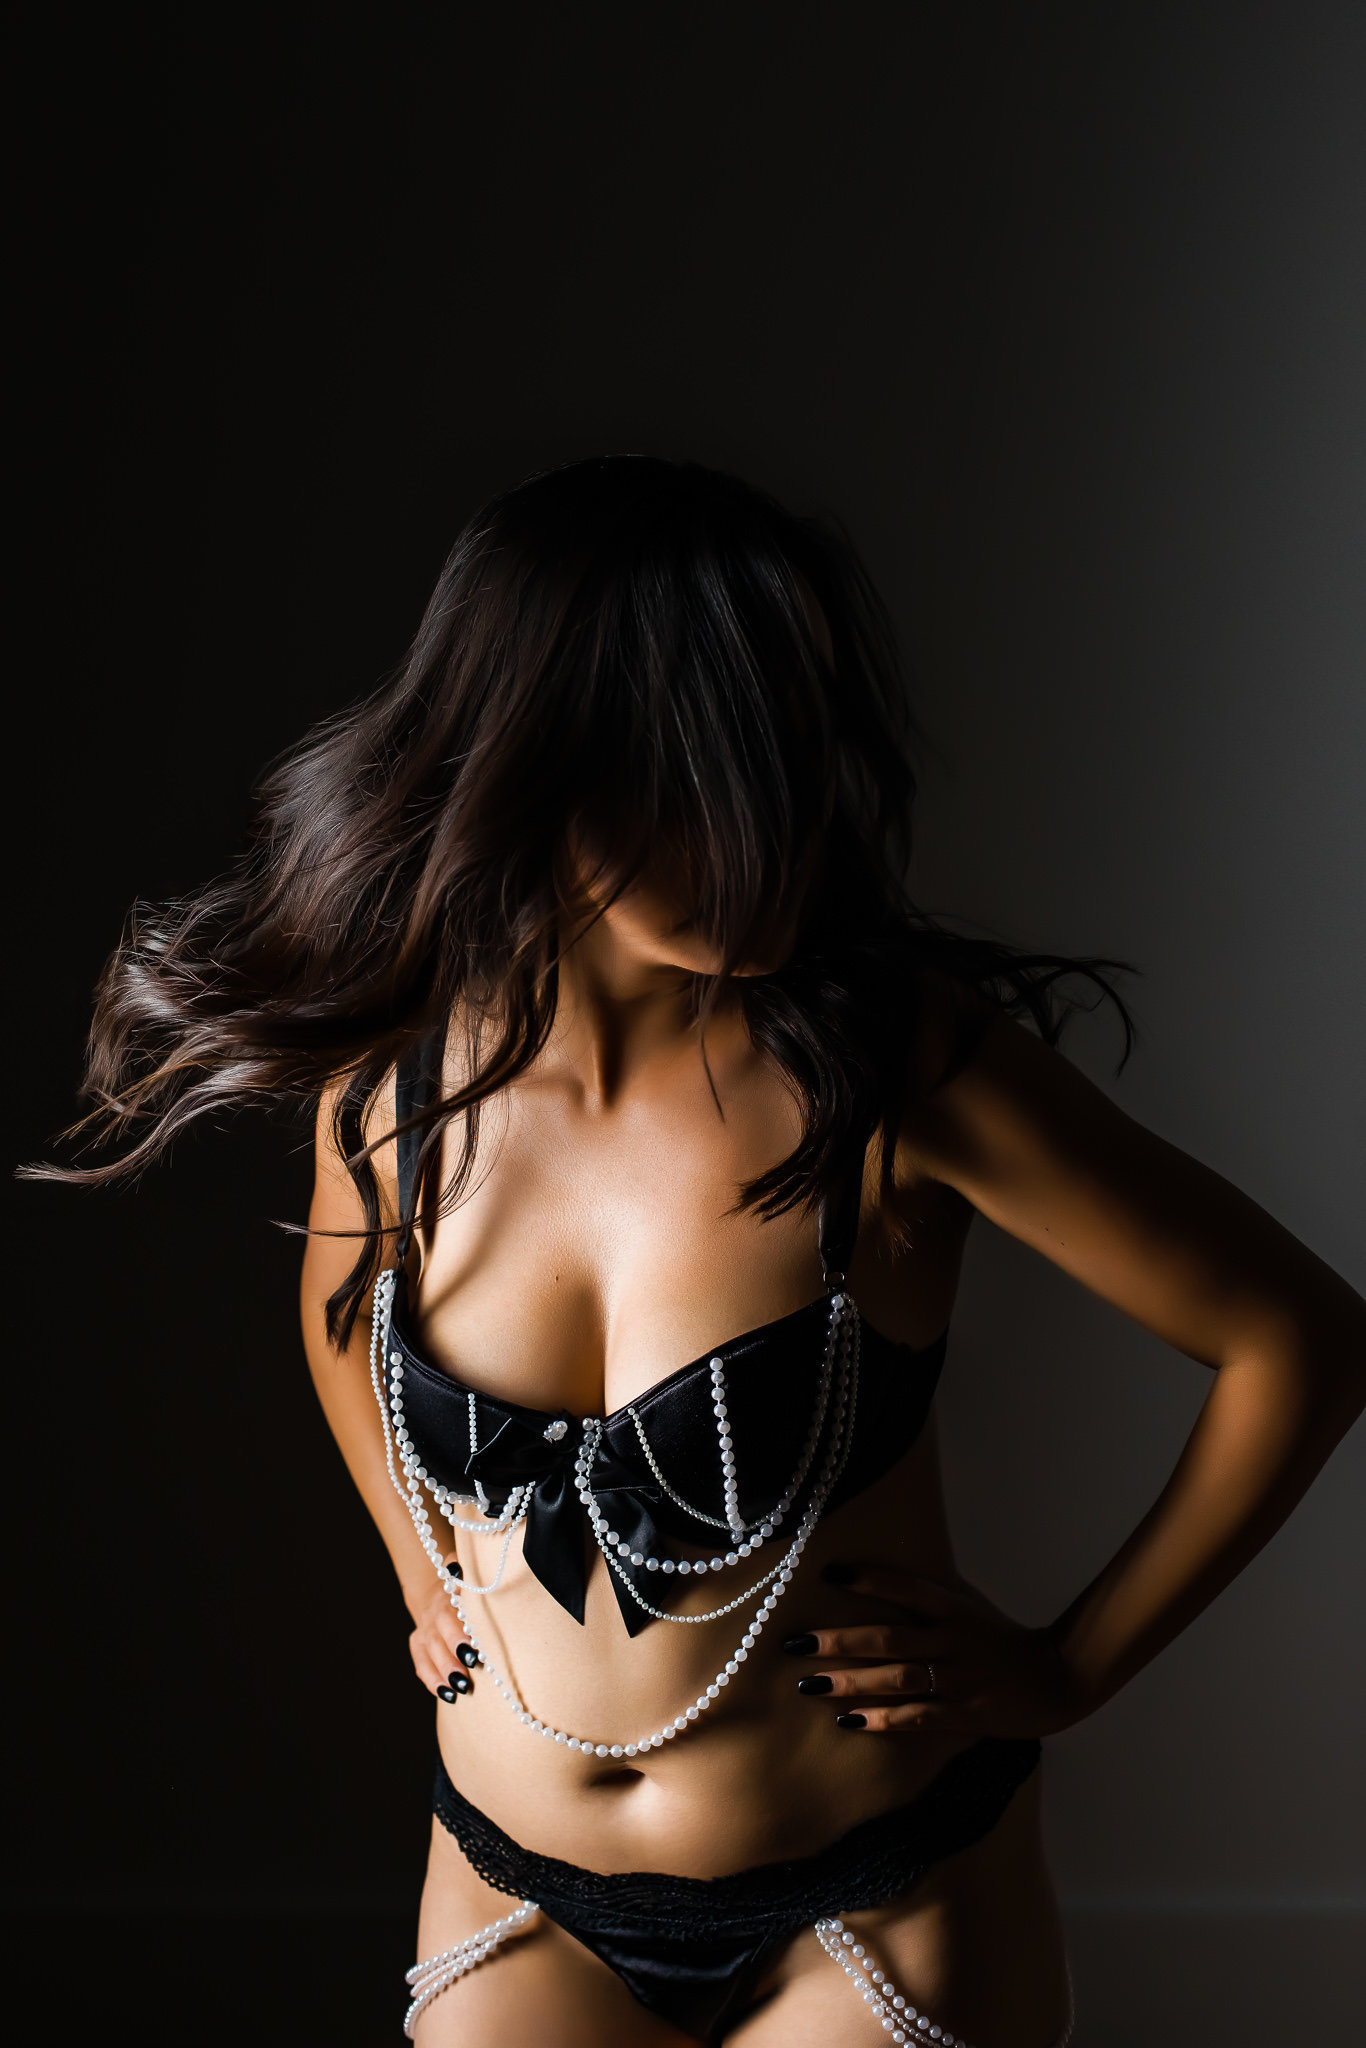 Boudoir photo in studio of a woman in lingerie flipping her hair